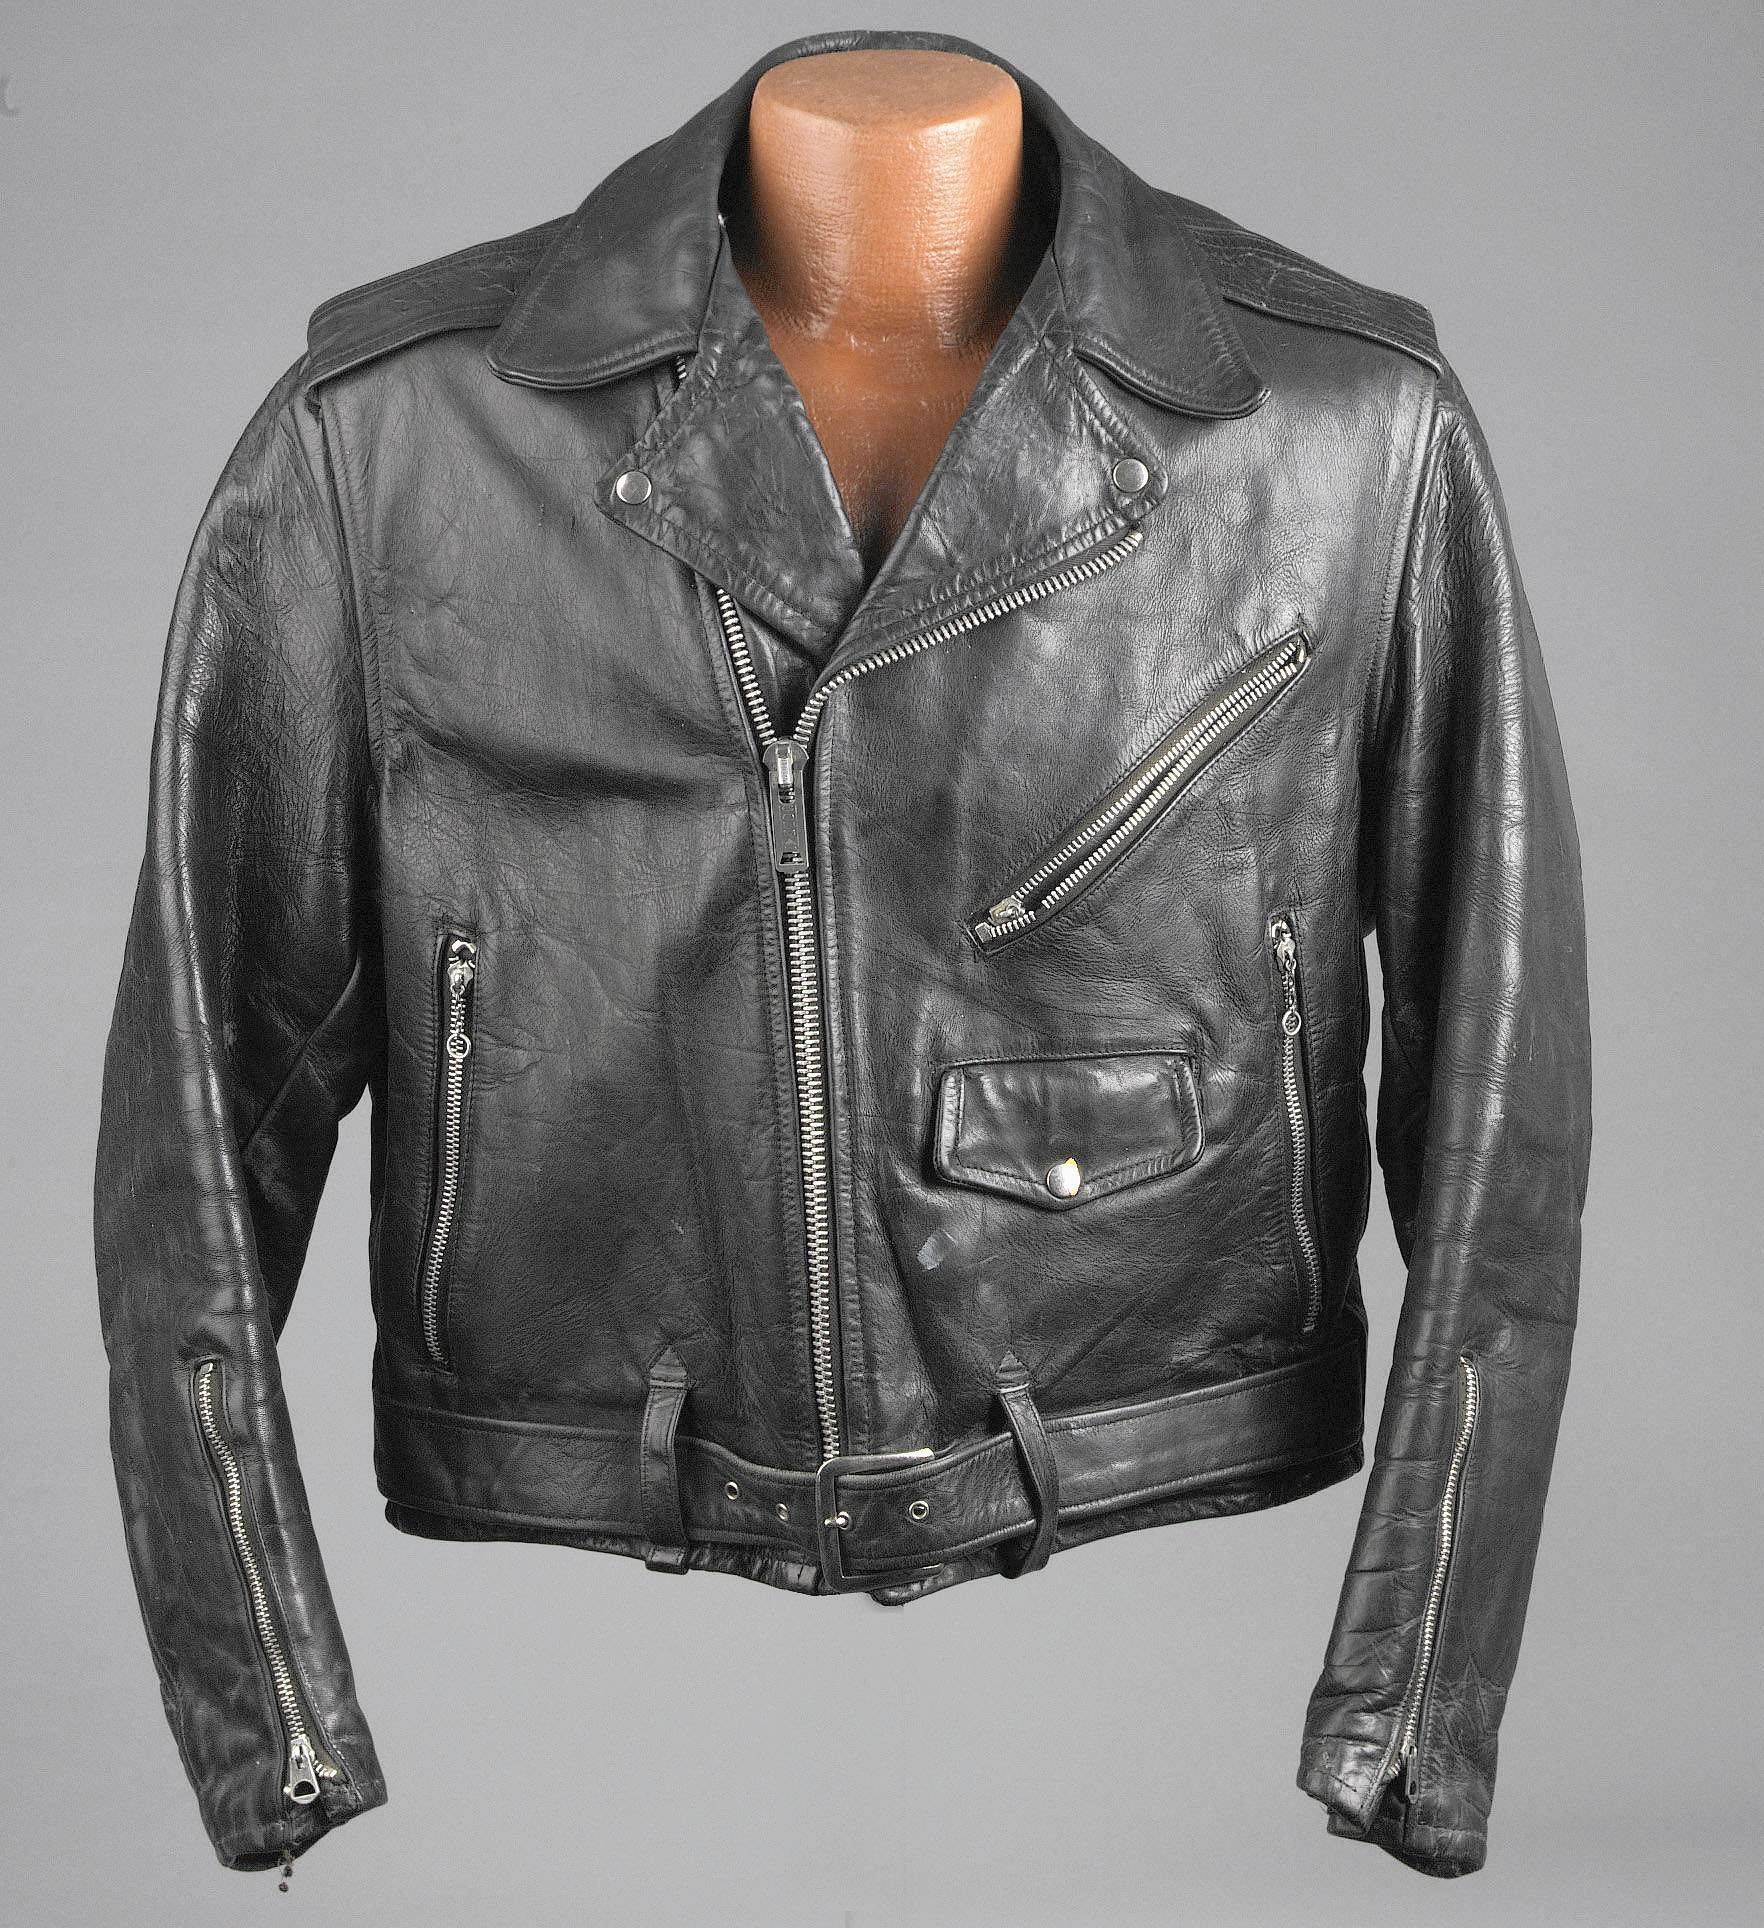 Worn To Be Wild Explores Cultural Legacy Of The Motorcycle Jacket